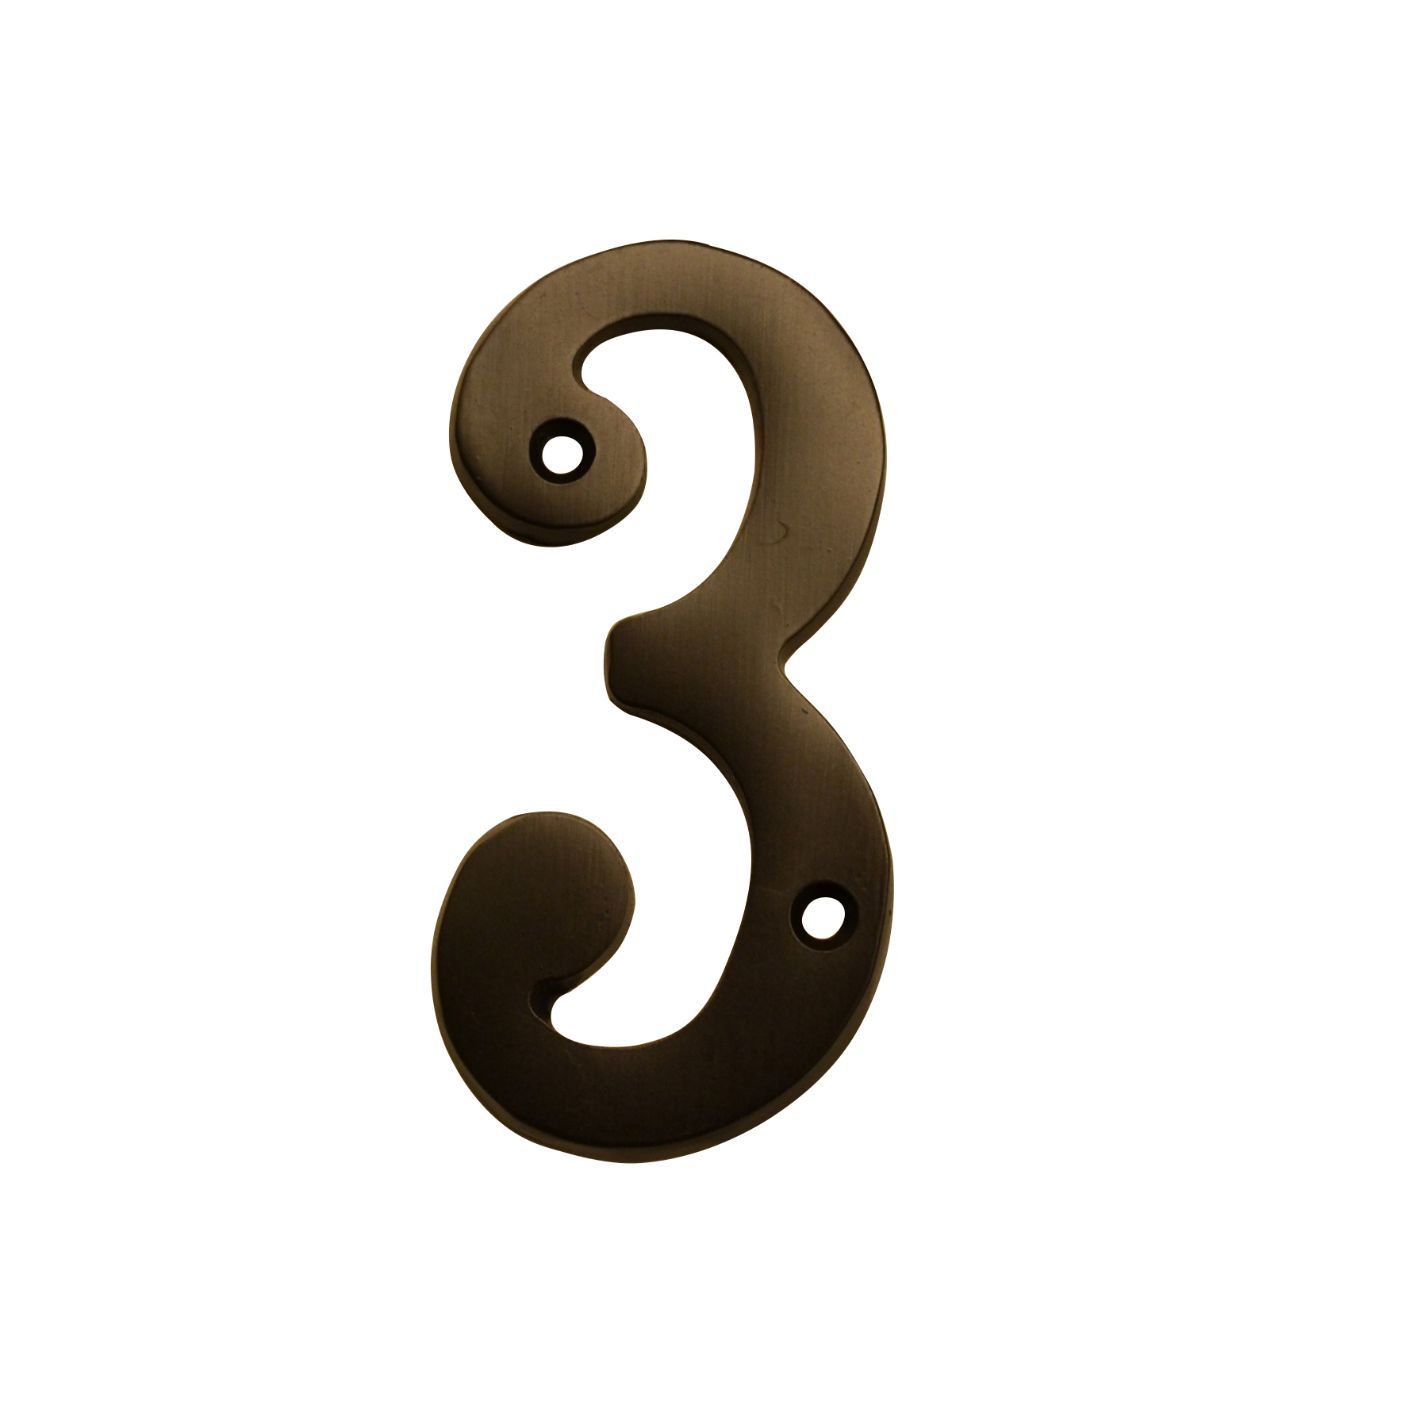 HOUSE NUMBERS, ELEGANT House Numbers — Oil Rubbed Bronze-3